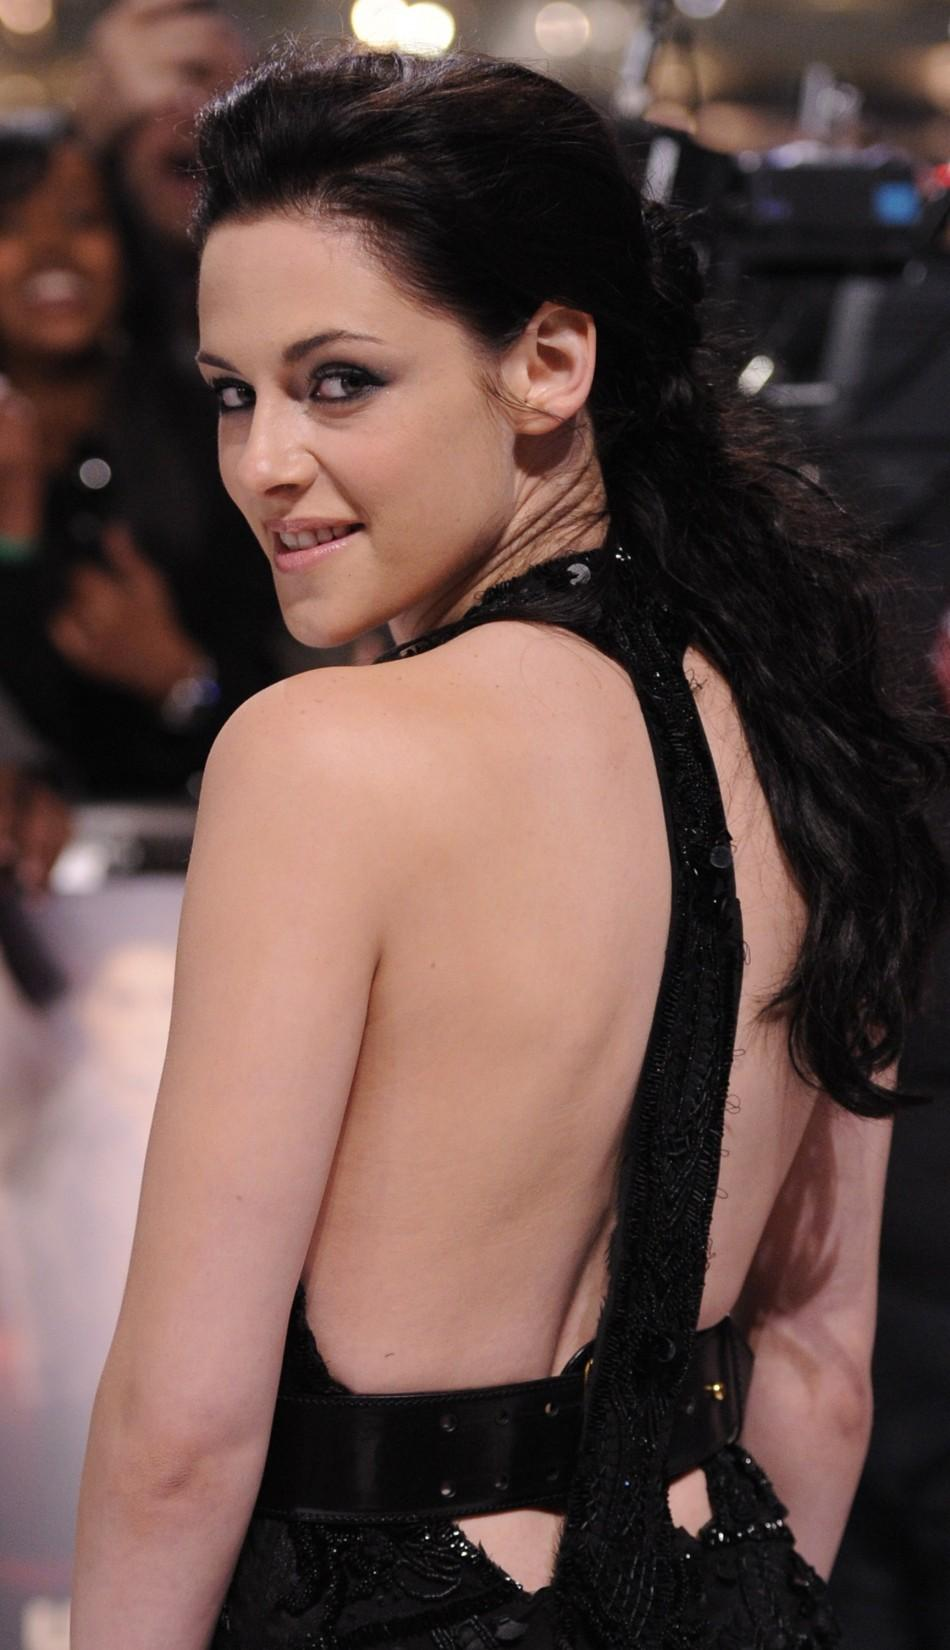 Kristen Stewart Joins the Celebrity Fashion Campaign Parade with Balenciaga Deal